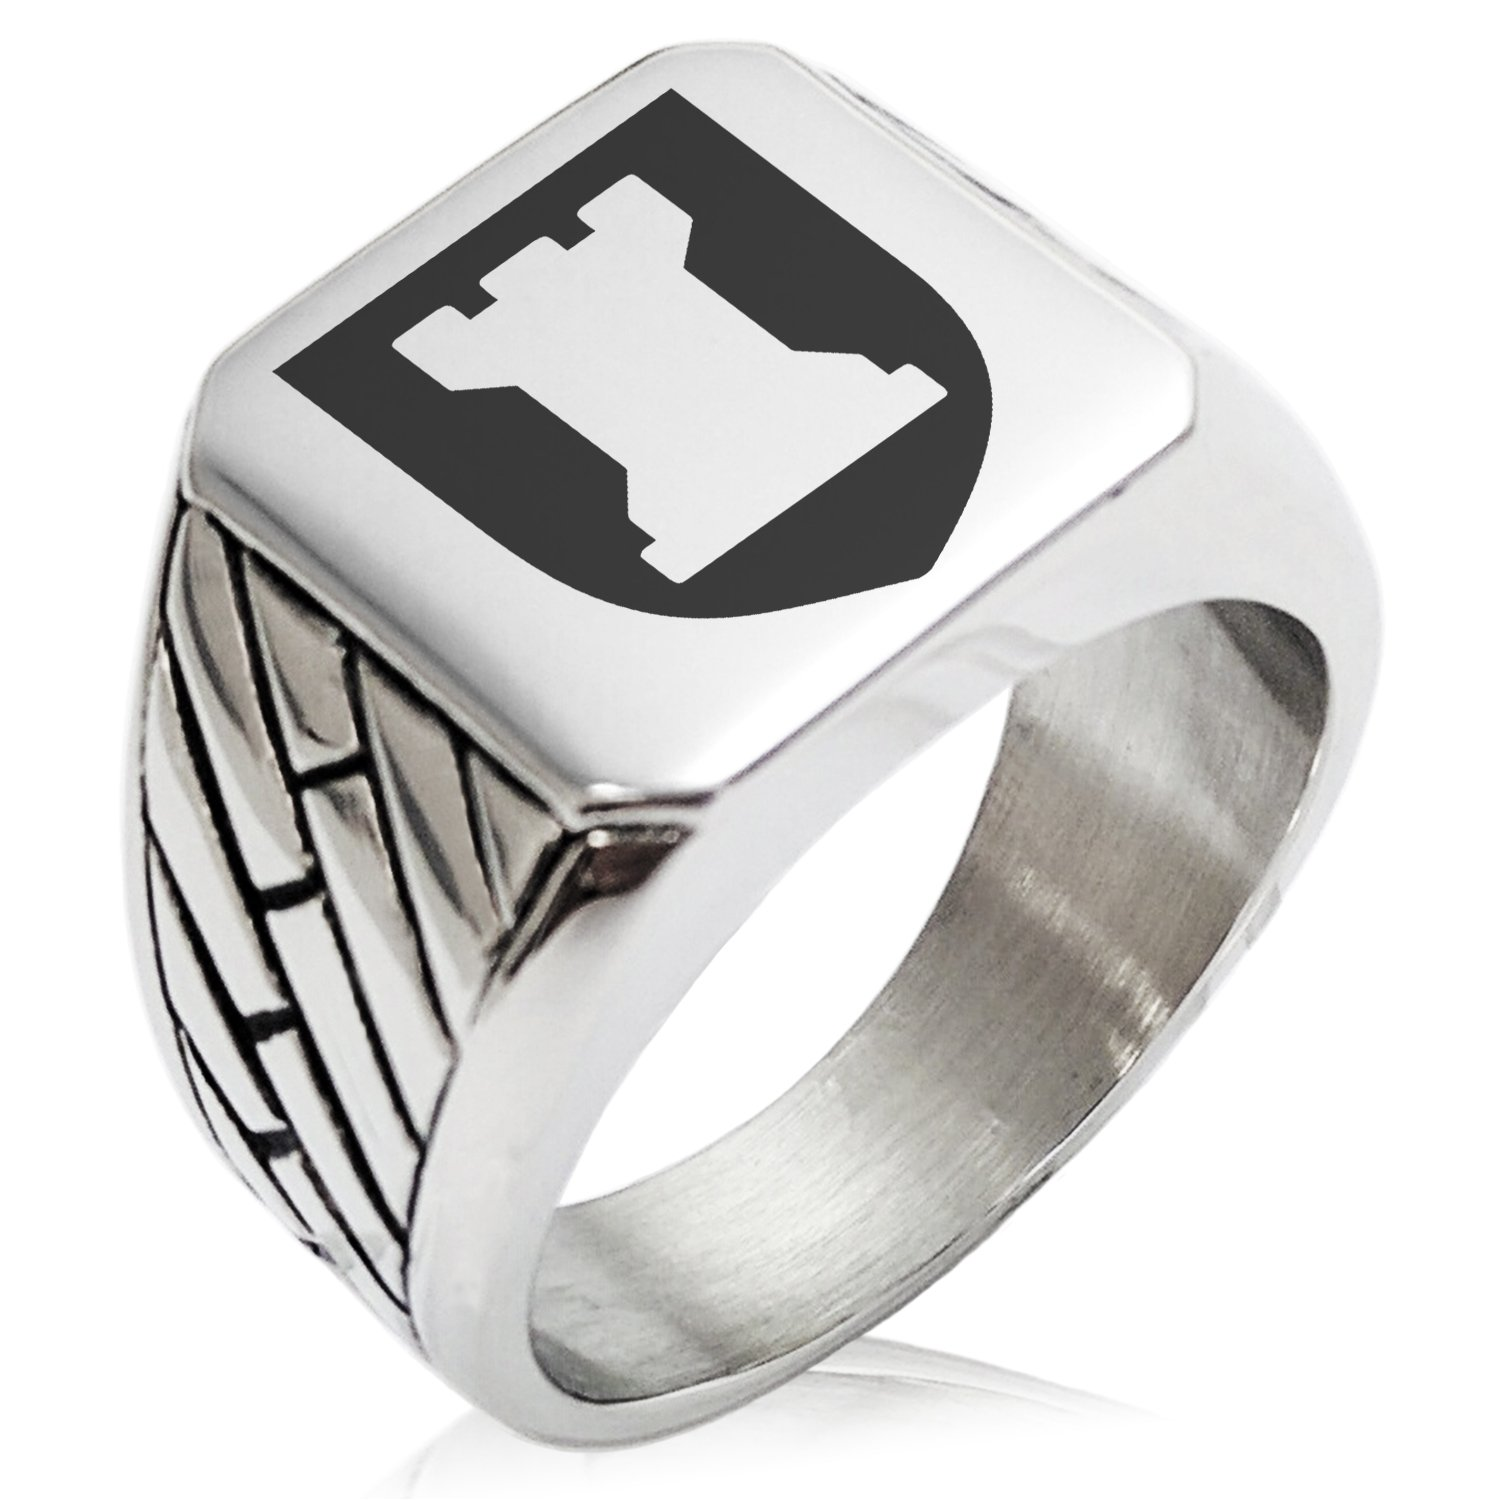 Two-Tone Stainless Steel Rook Strategy Coat of Arms Shield Engraved Geometric Pattern Biker Style Polished Ring, Size 8